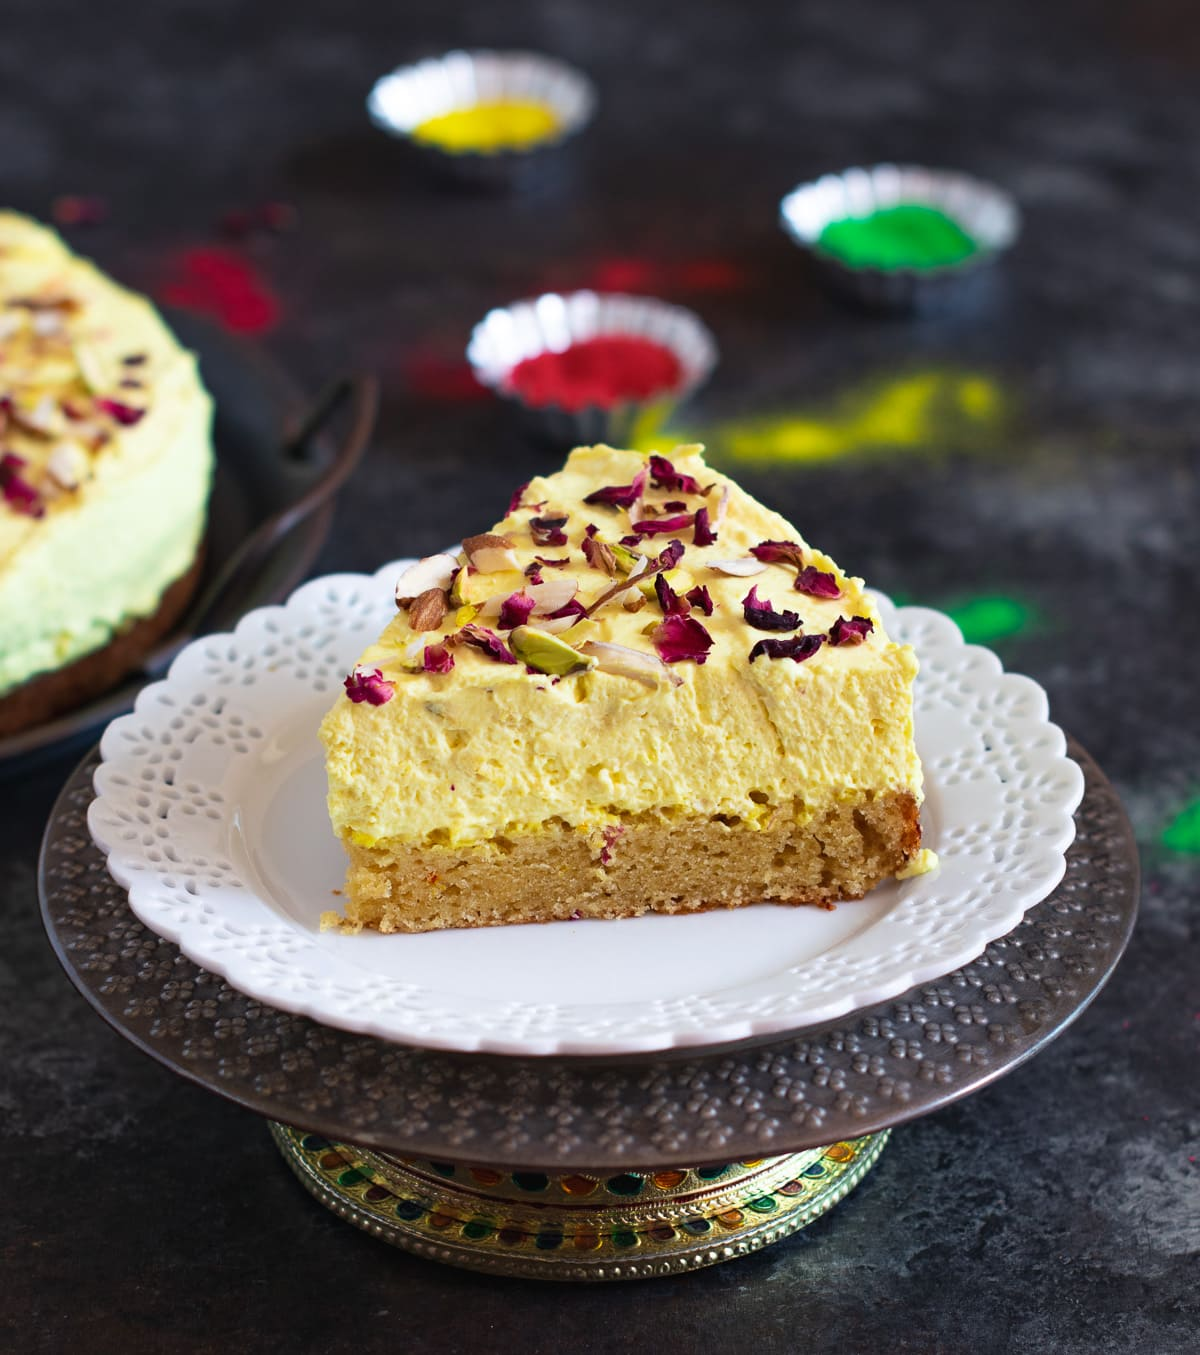 Eggless Thandai Cake set on a white plate over a cake stand.